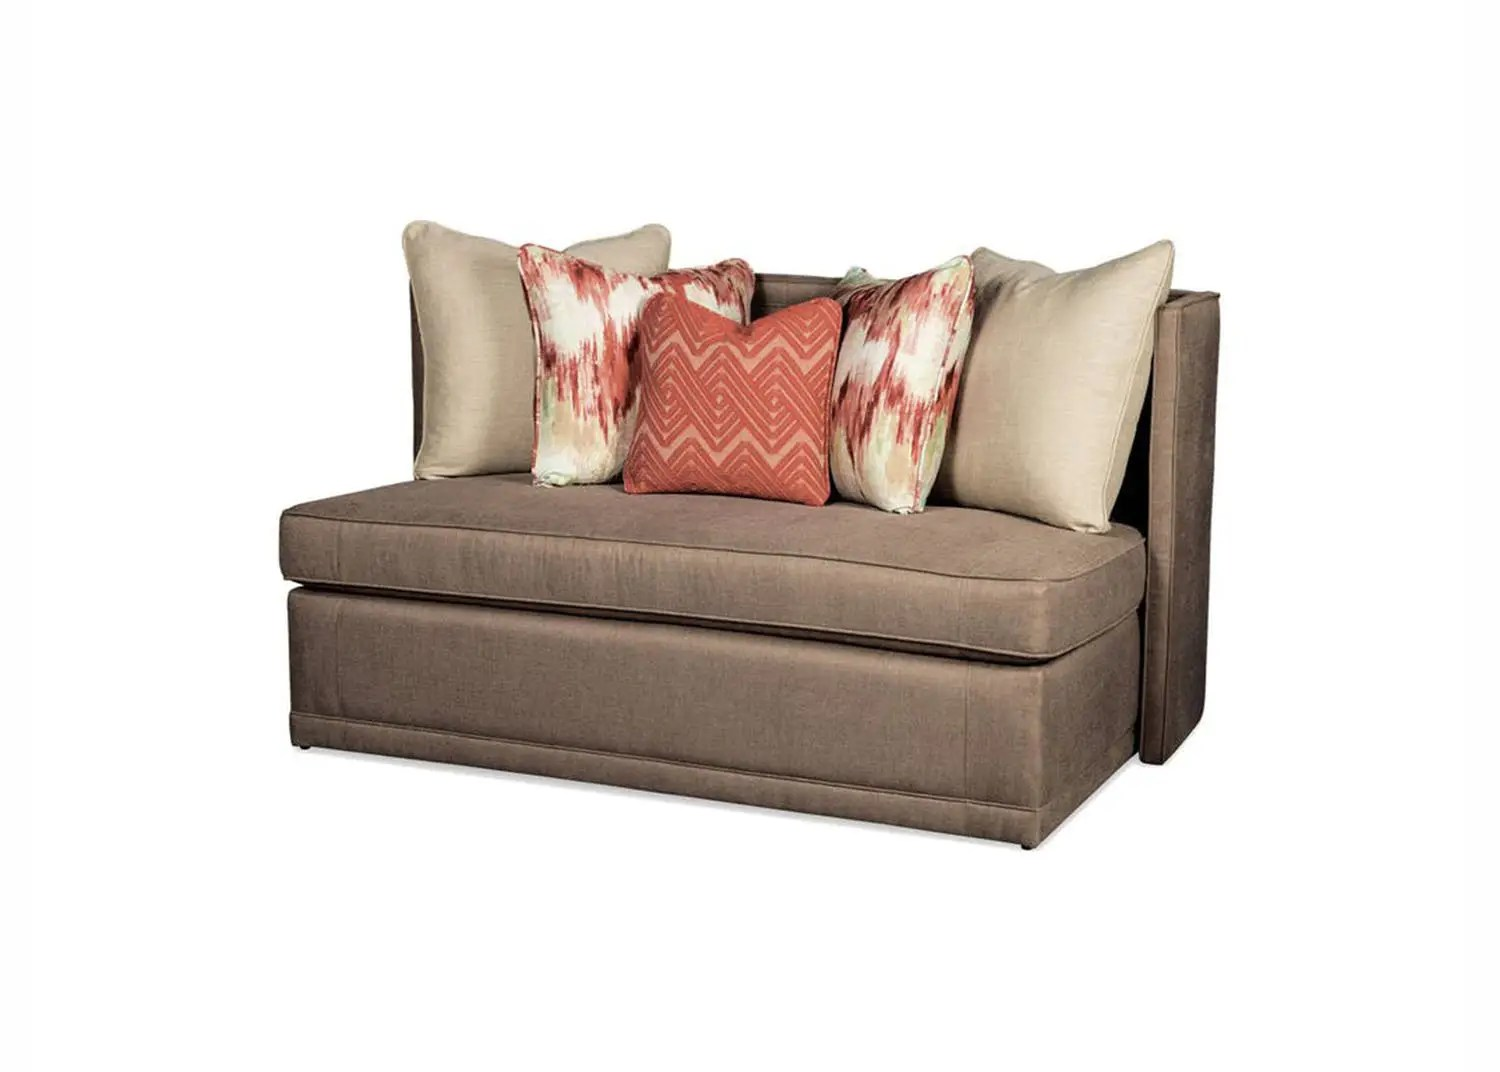 sofa accessories names cheap sale lucille full size bed mobilart decor high end furniture